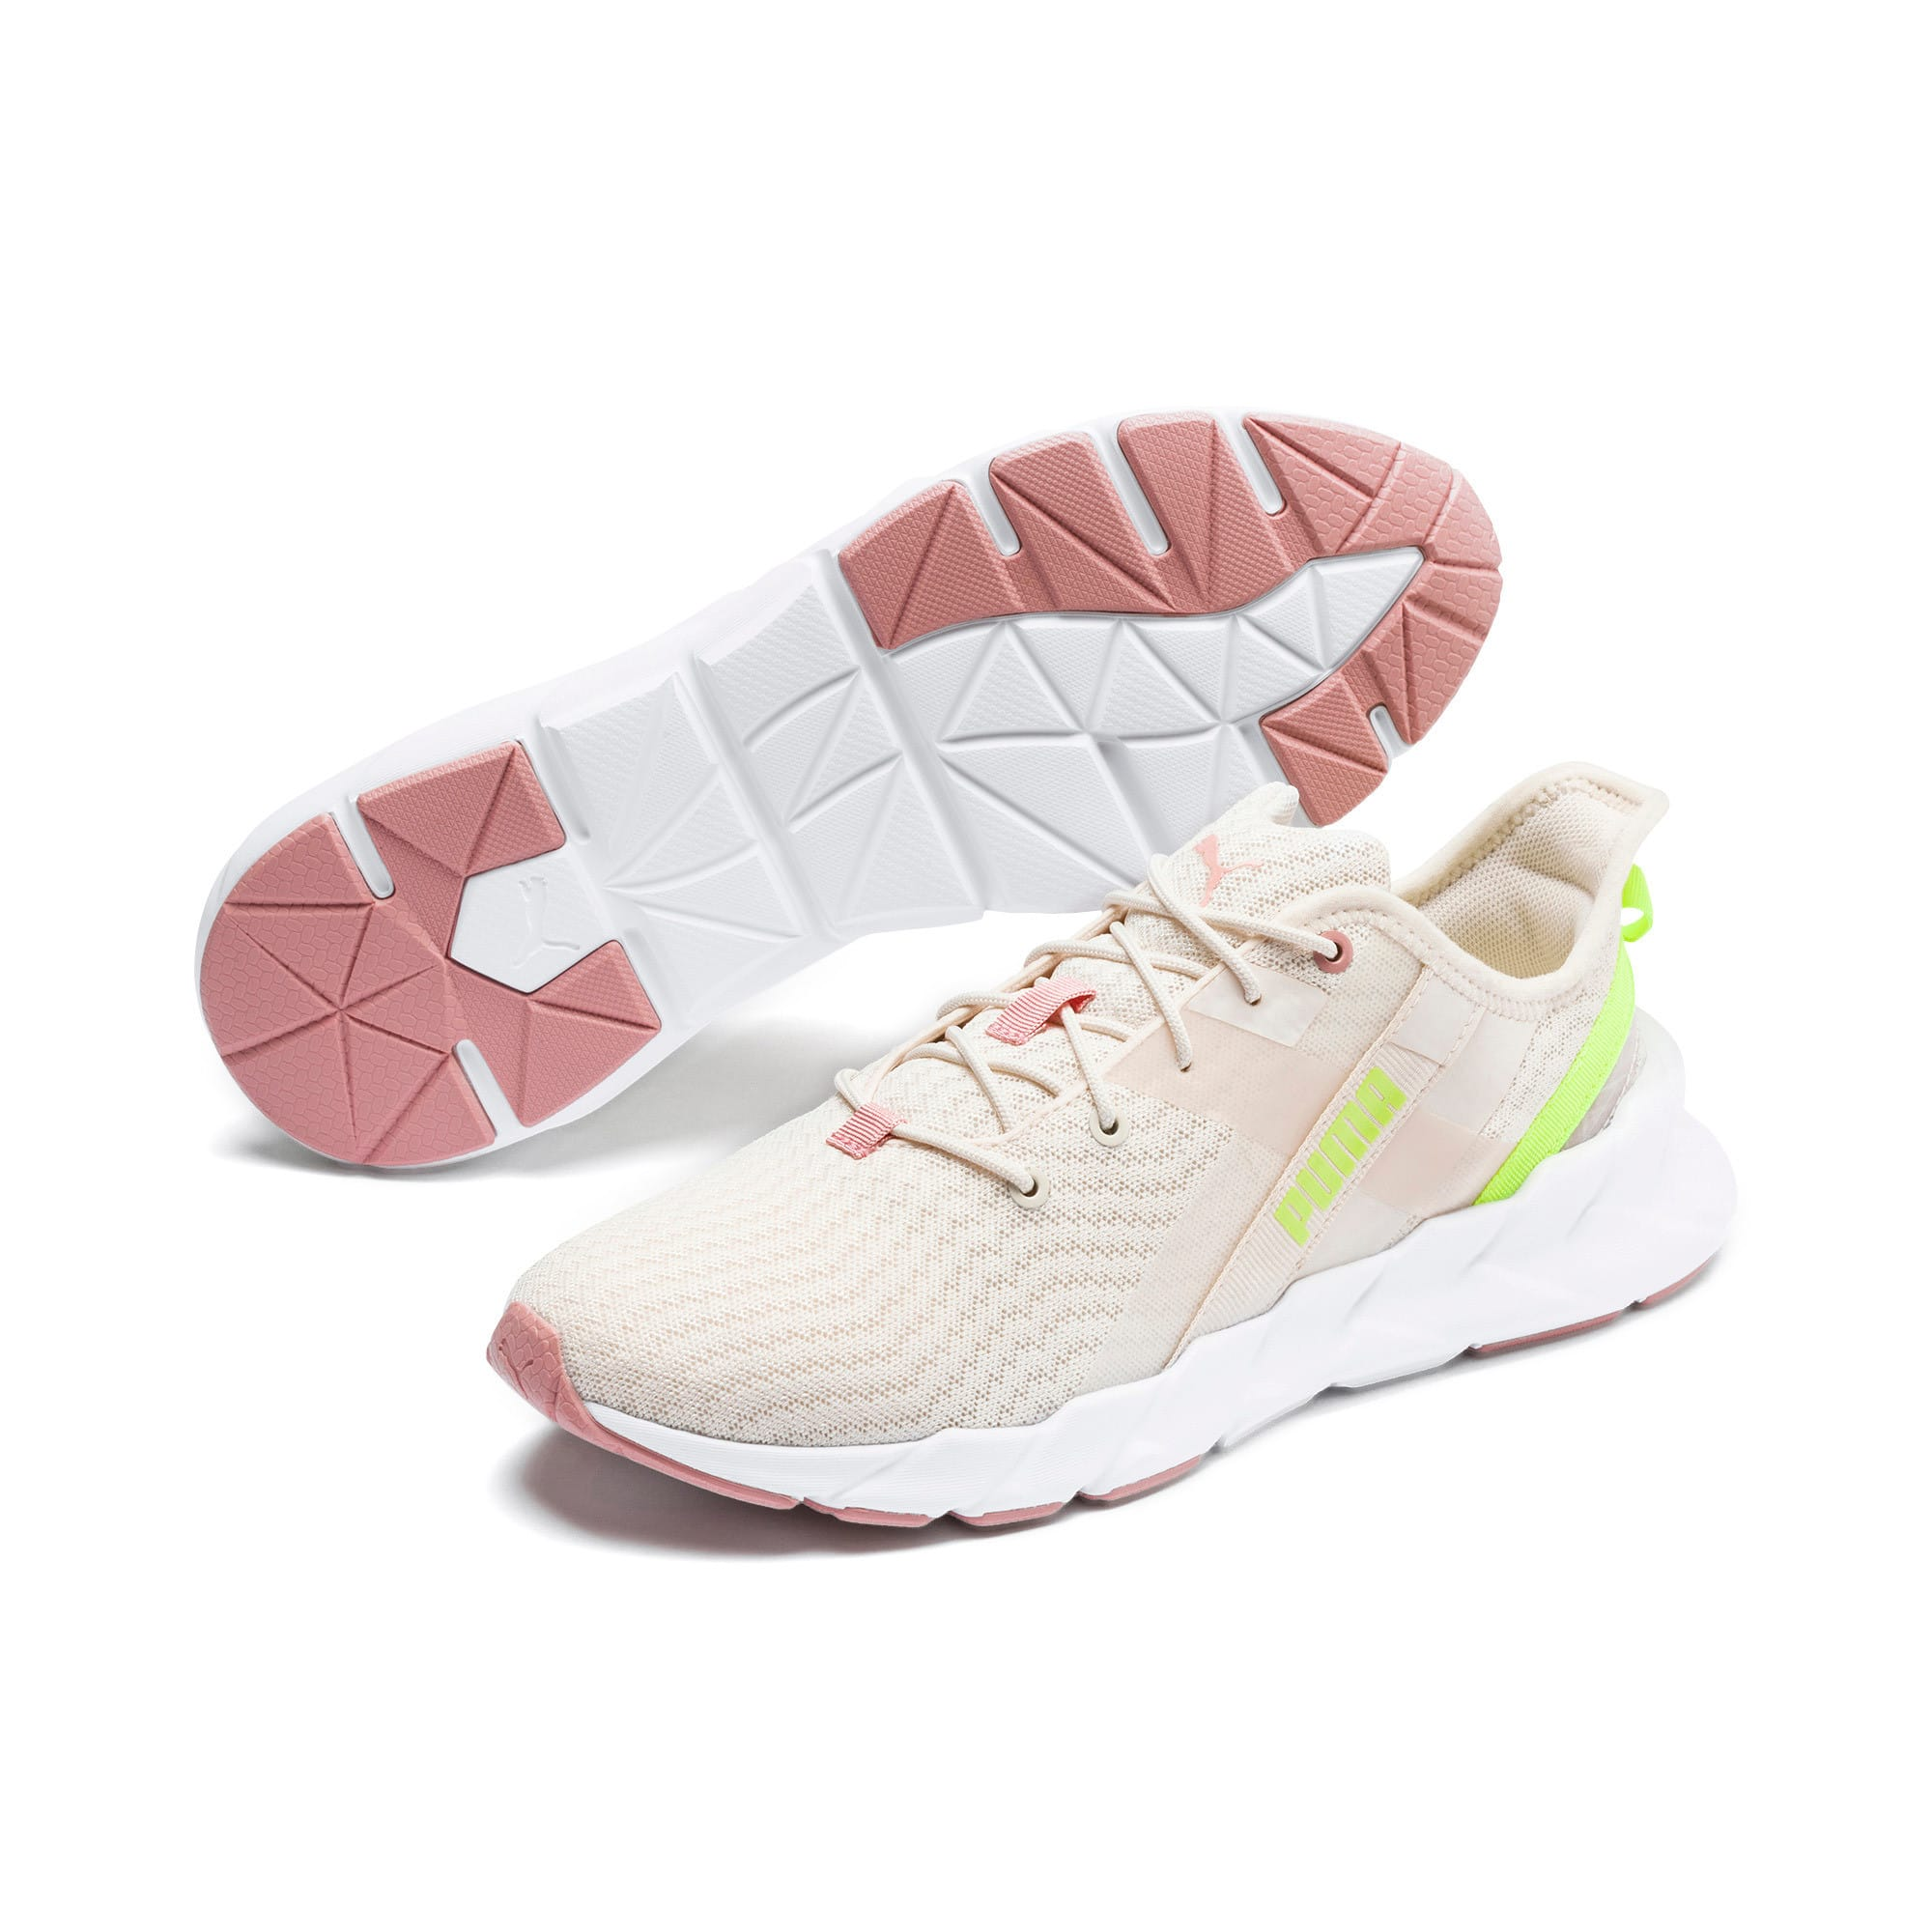 Thumbnail 3 of Weave XT Shift Women's Training Shoes, Pastel Parchment-Puma White, medium